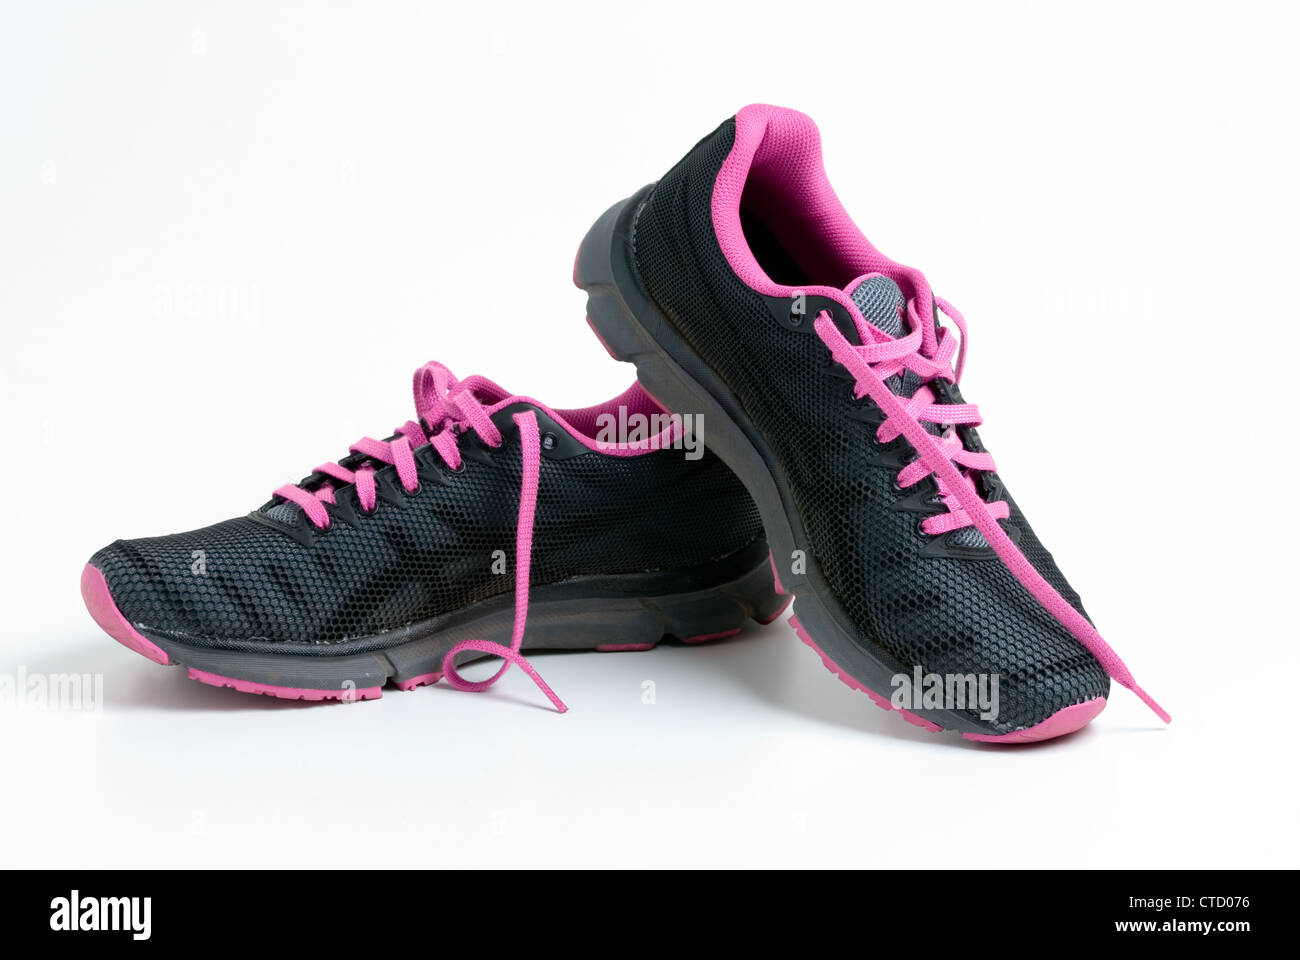 4468a3307e5e2 Worn Pair of Pink and black Asics running shoes Stock Photo ...